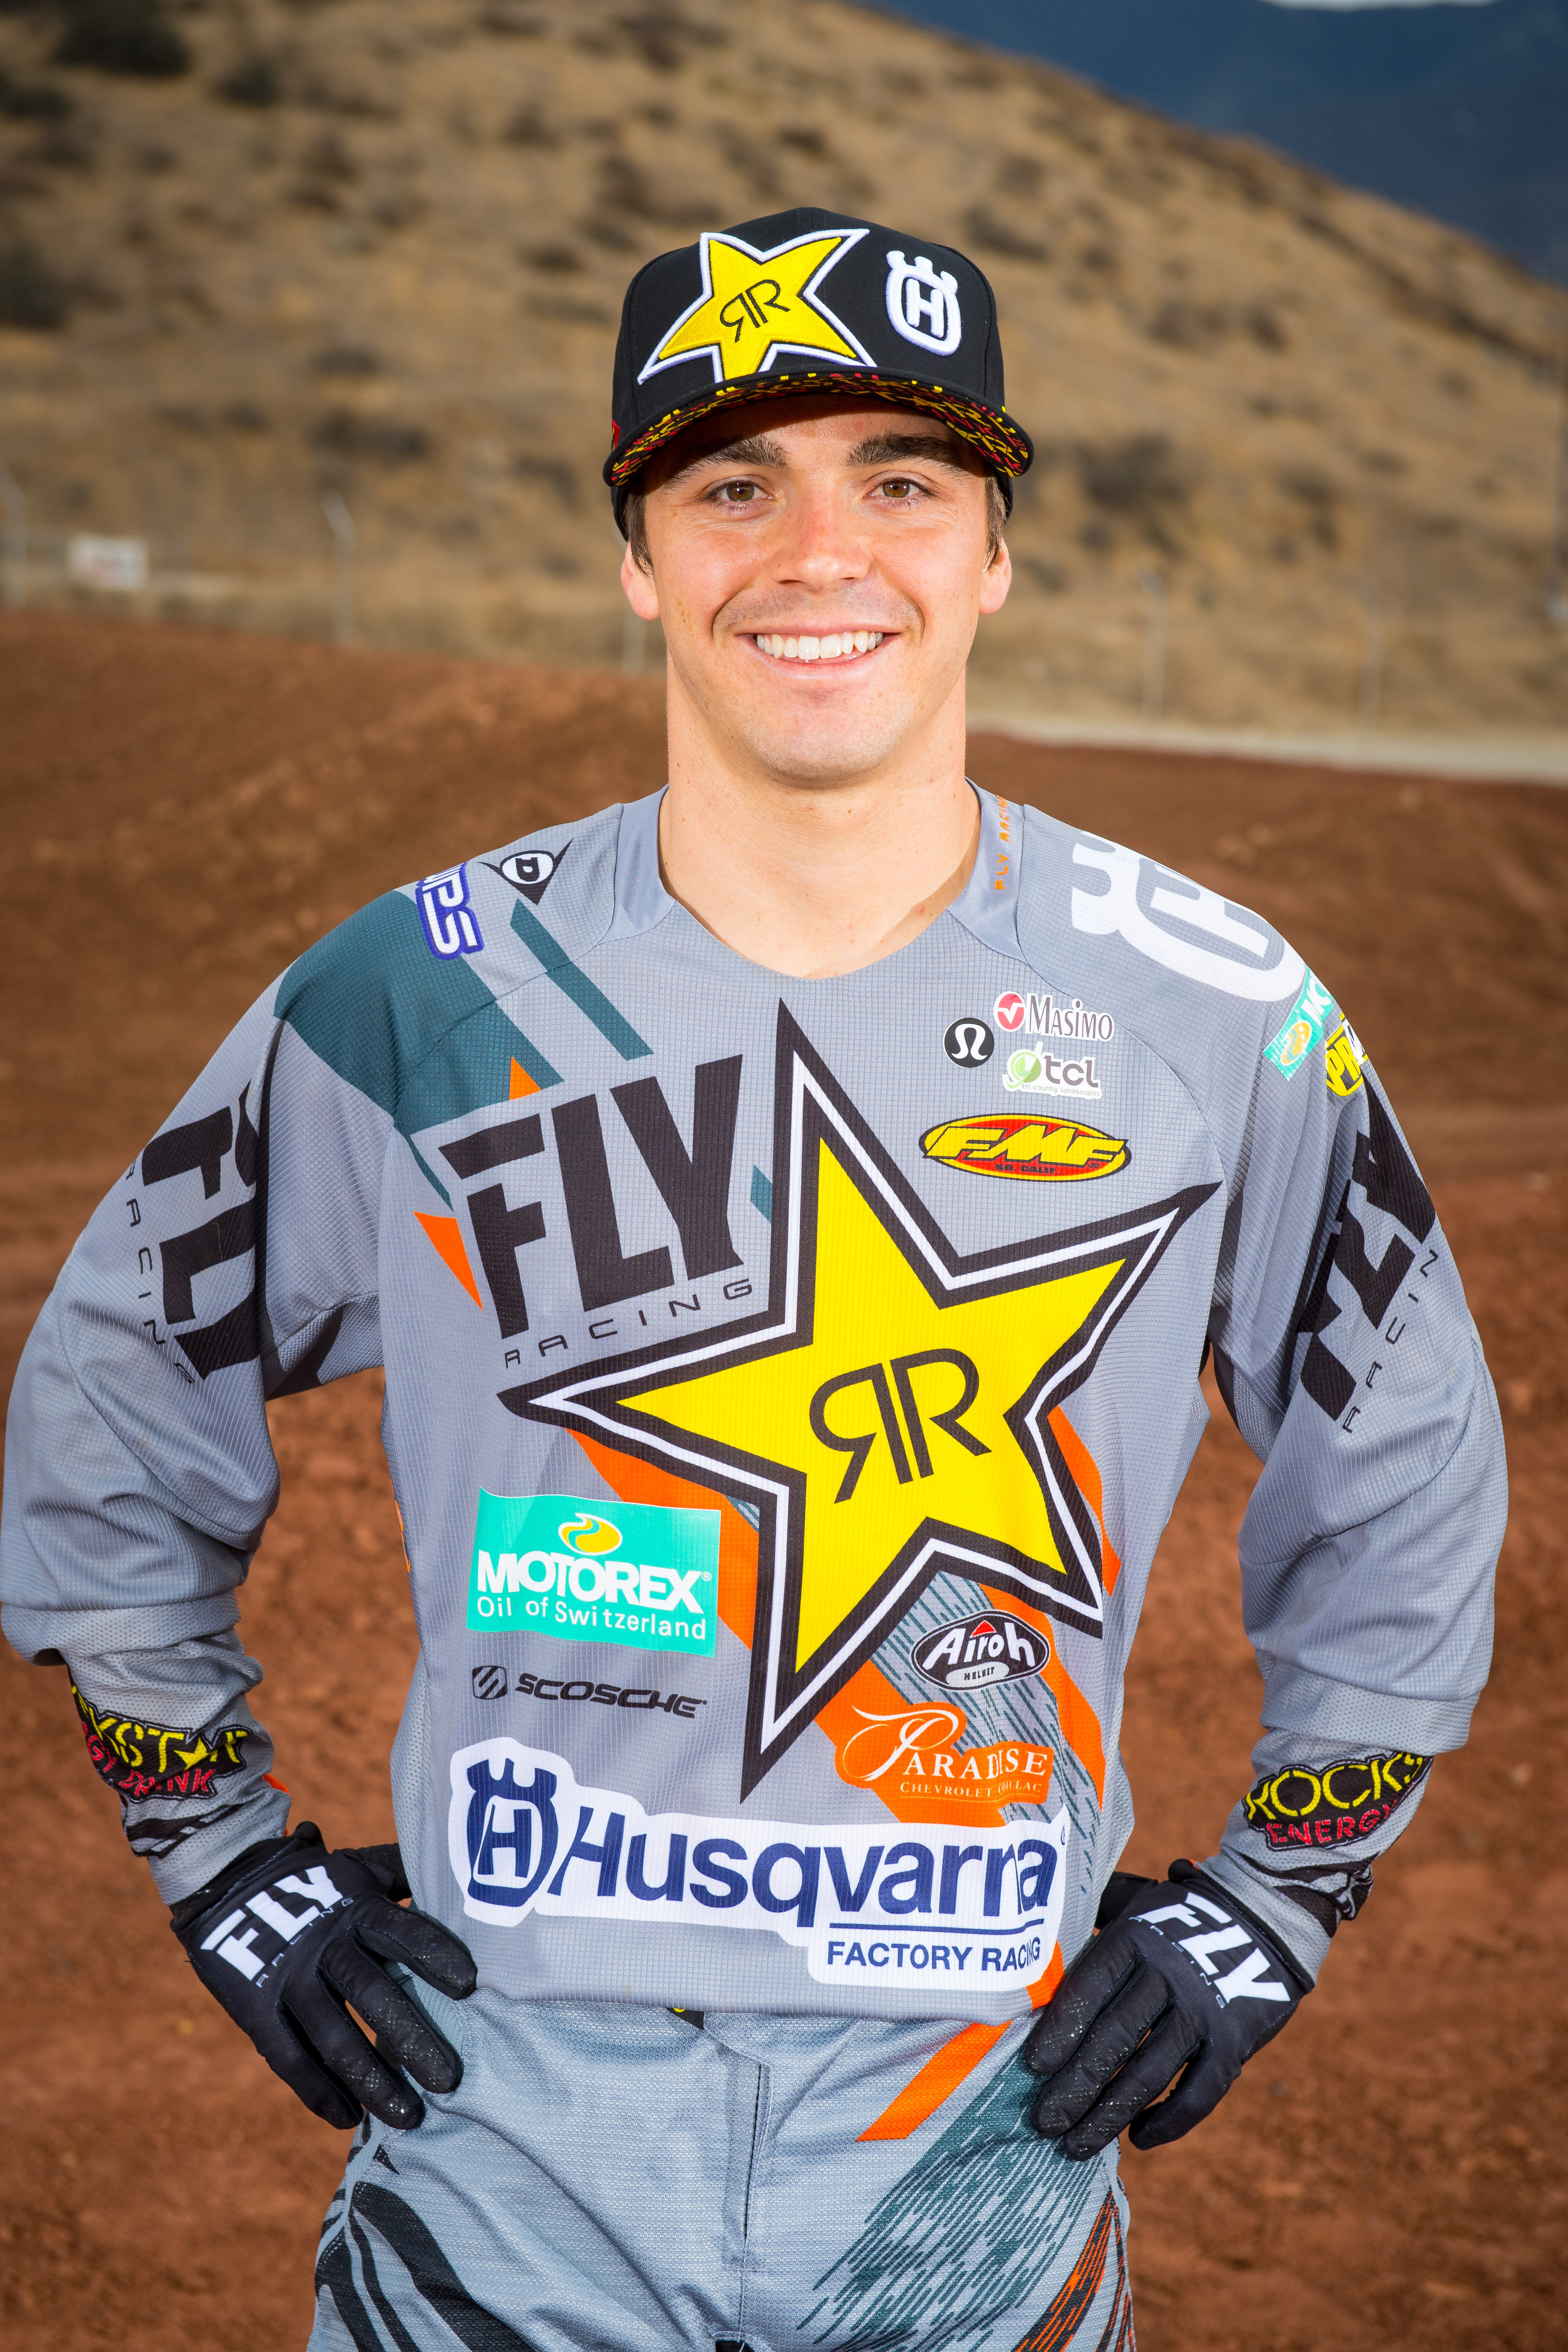 Rockstar Energy Husqvarna Factory Racing are pleased to announce the contract extension of Zach Osborne